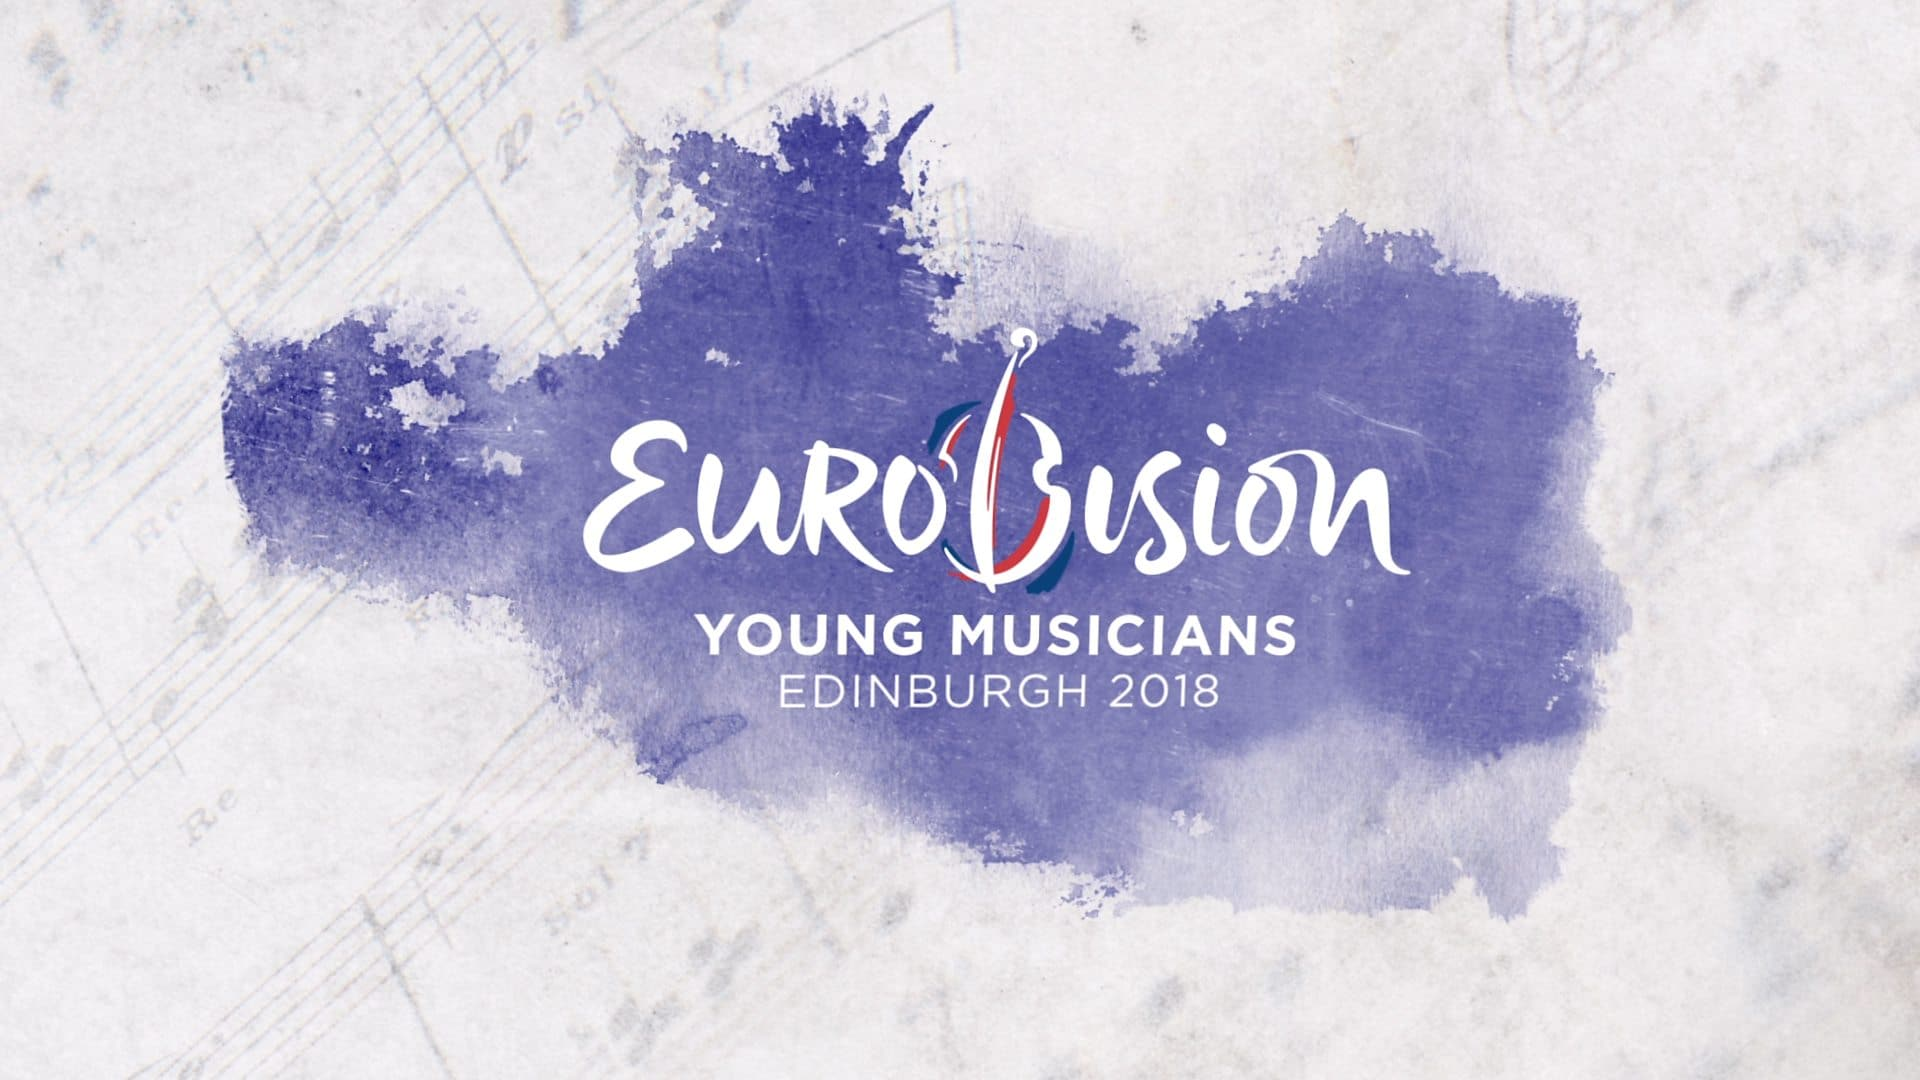 Eurovision Young Musicians 2018 - BBC cover